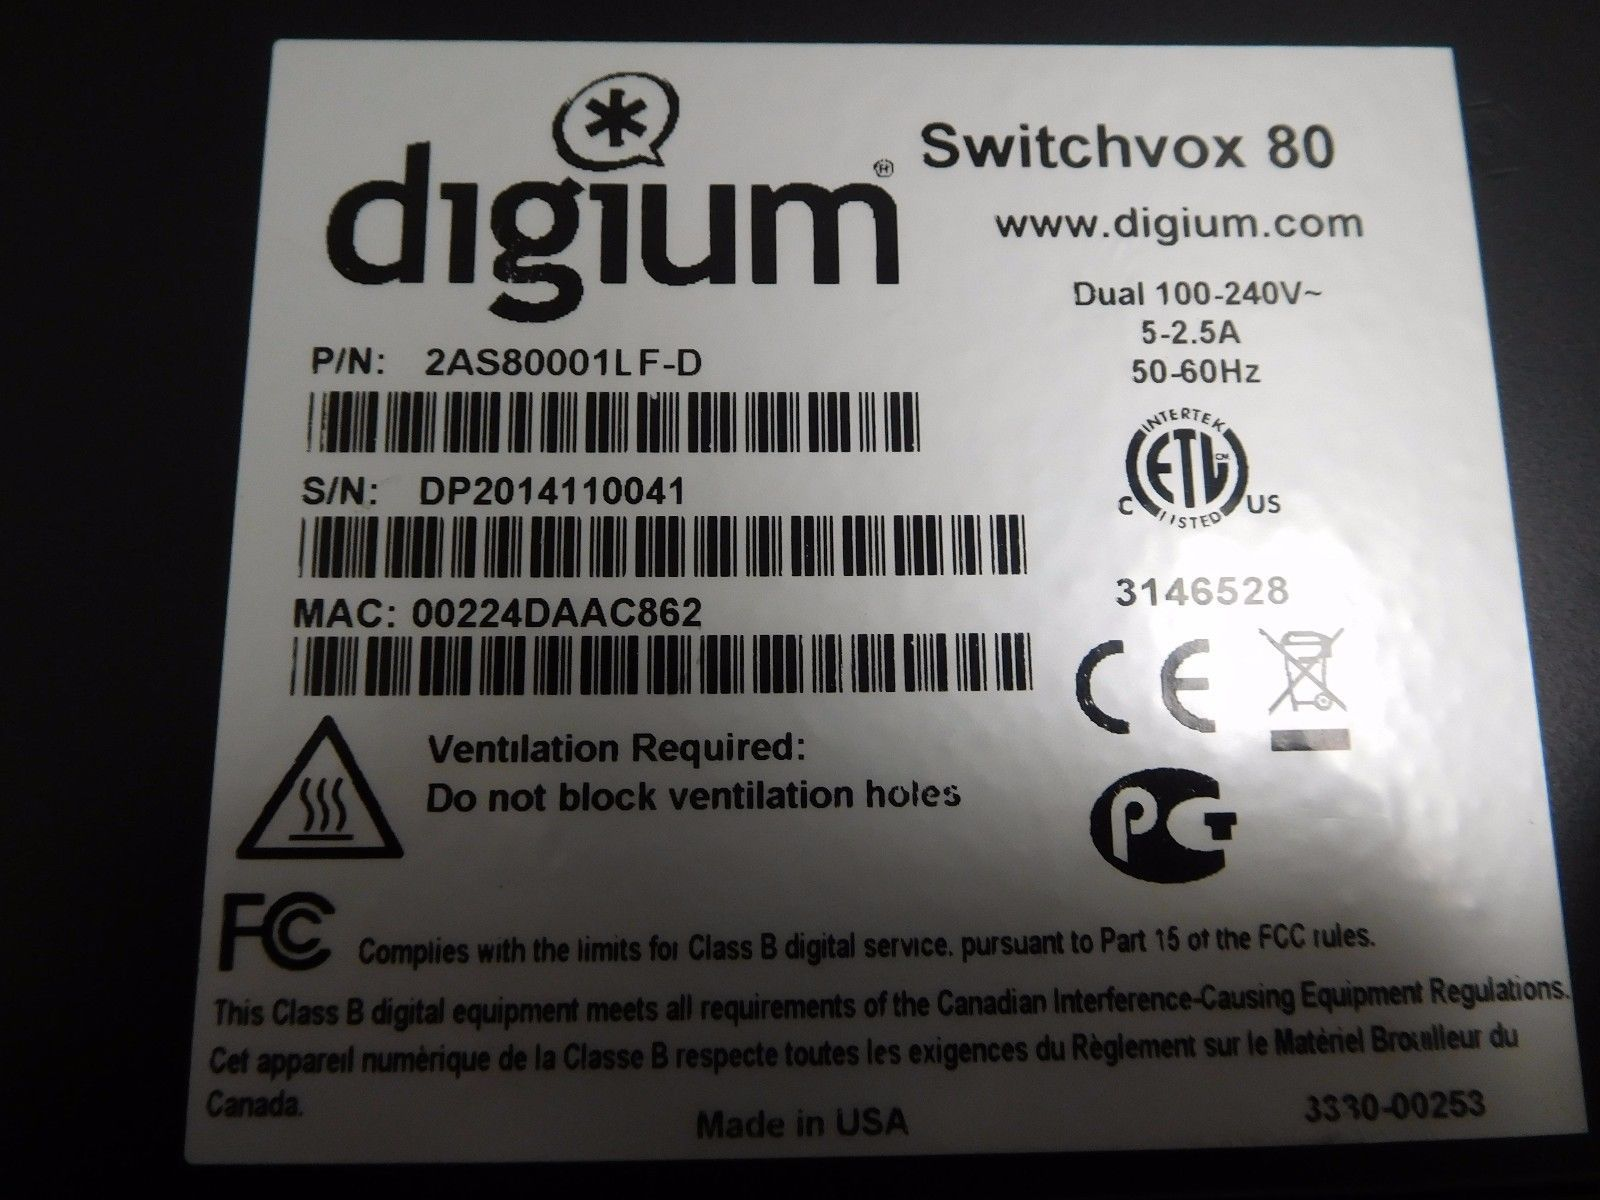 Digium Switchvox 80 Asterisk VoIP System 2AS80001LF-D 2AS80001LF image 6